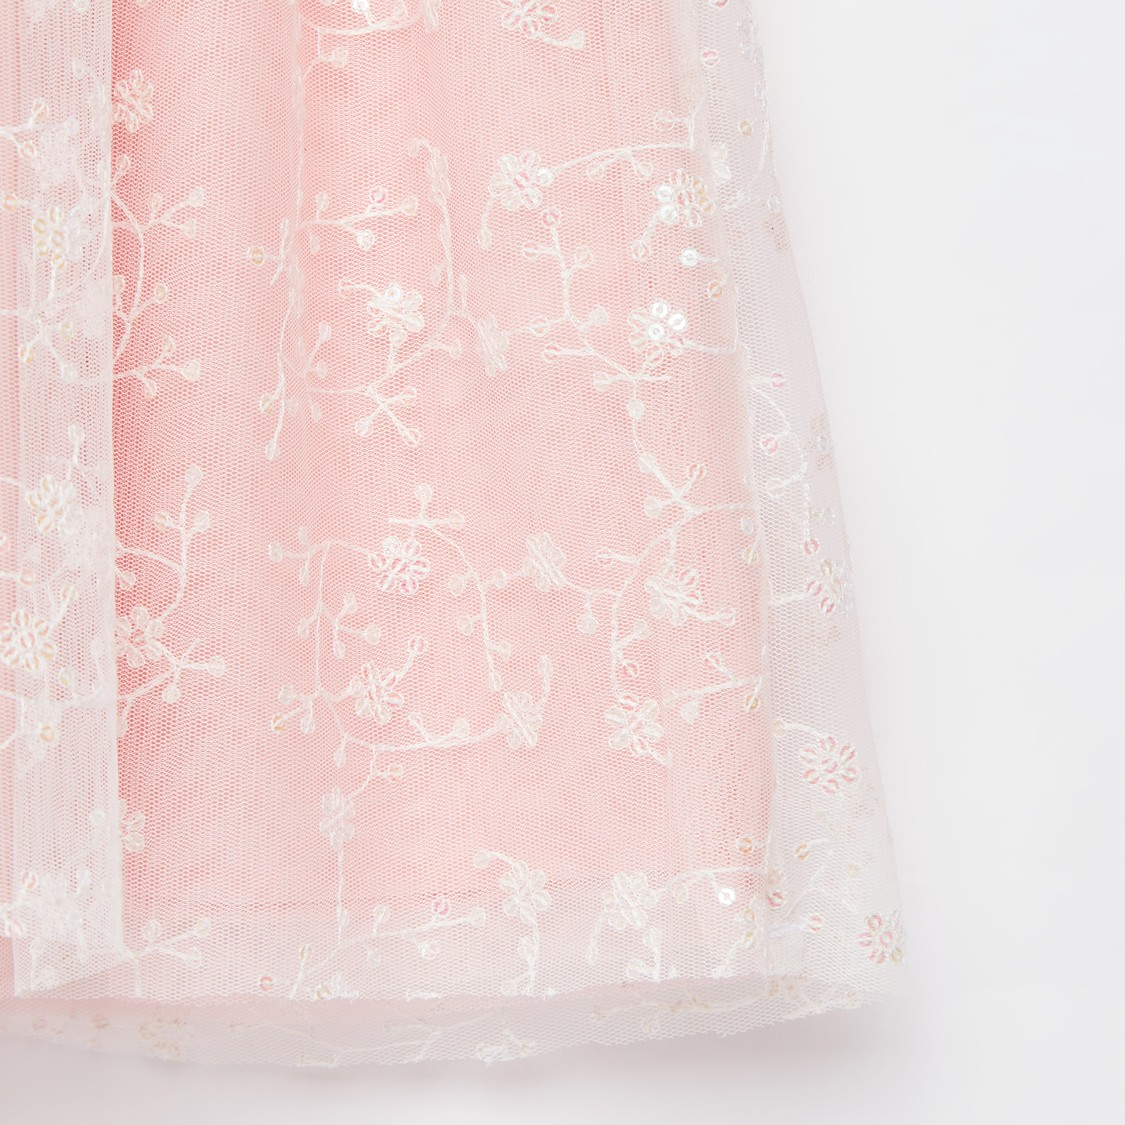 Lace Detail Overlay Sleeveless Dress with Floral Detail